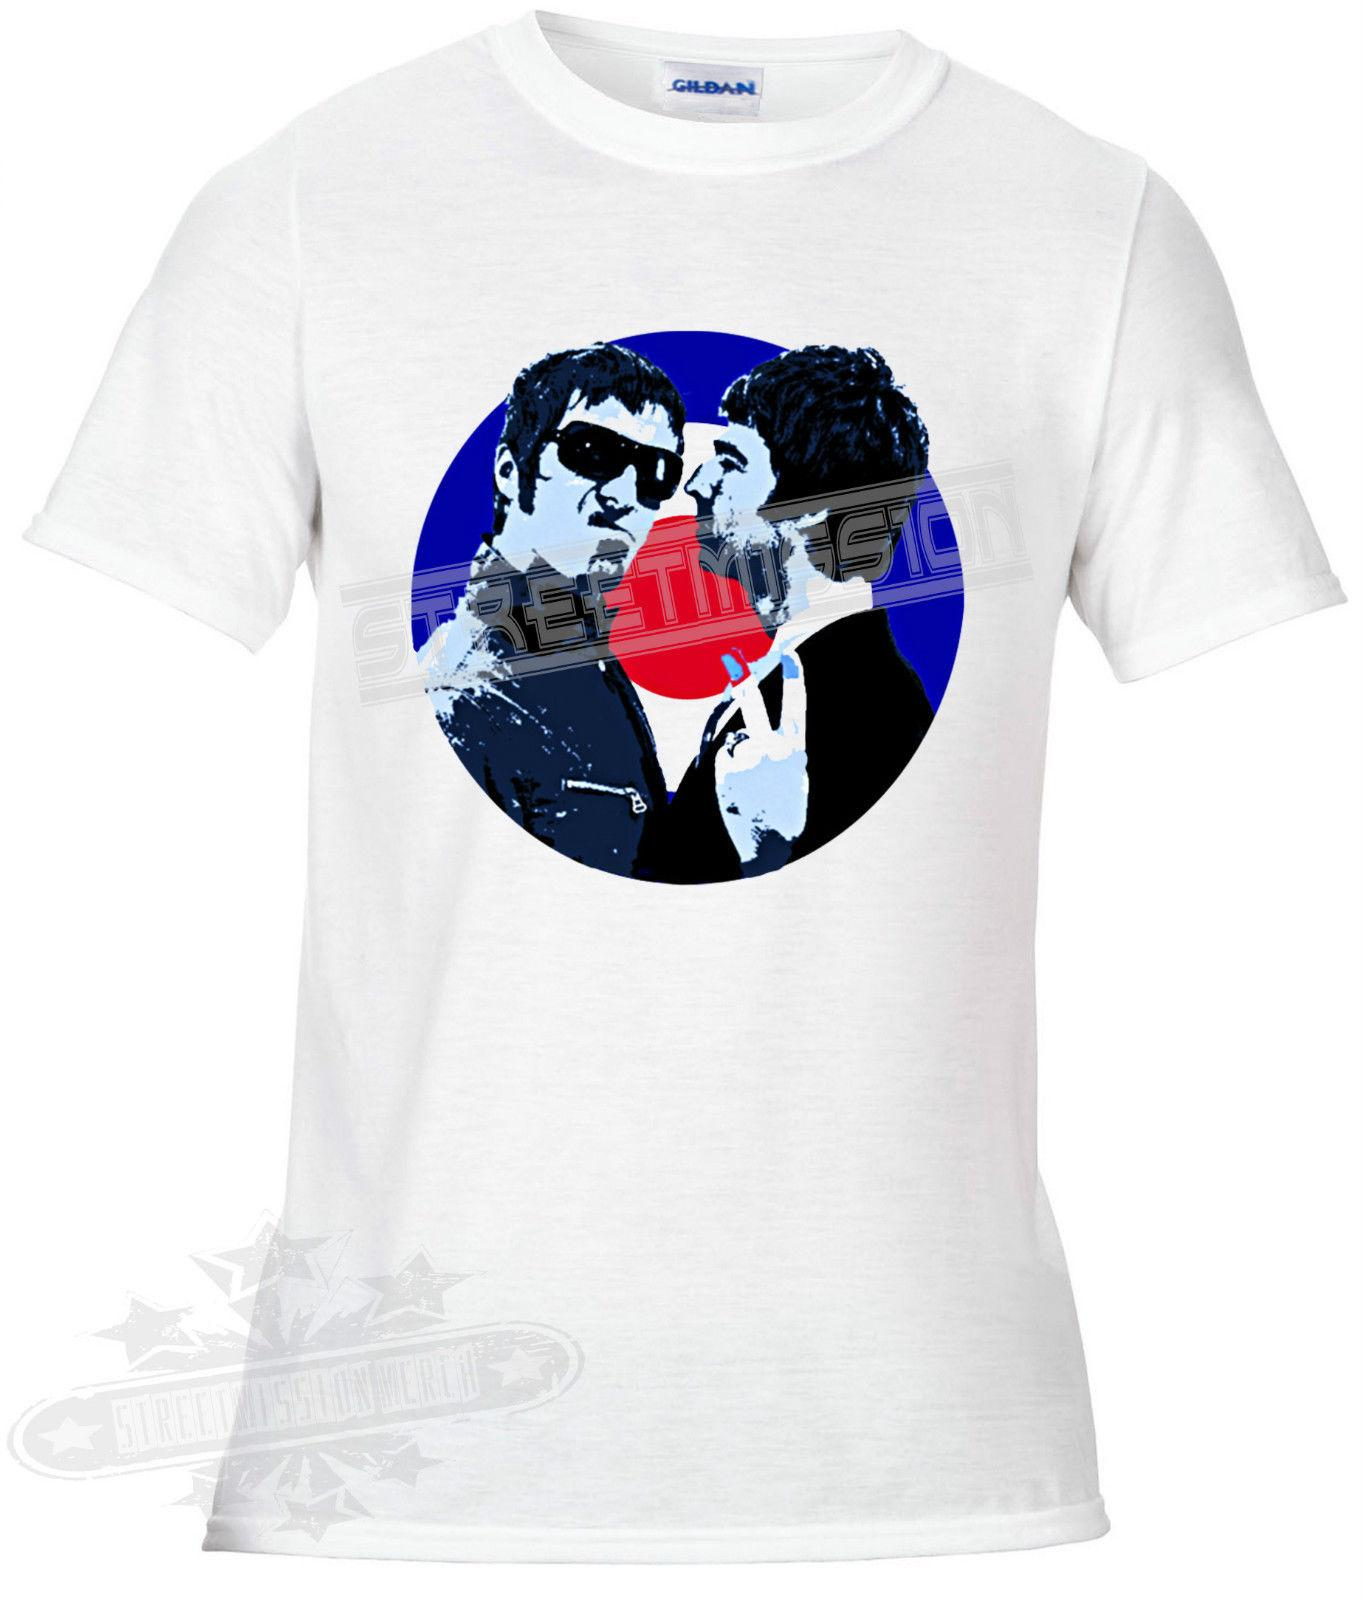 dfbbf86e3c1a5 Details Zu Liam Gallagher Noel Gallagher Oasis Mod Target T Shirt Music  Band Tribute Funny Free Moto Shirts Tee T Shirts From Lukehappy13